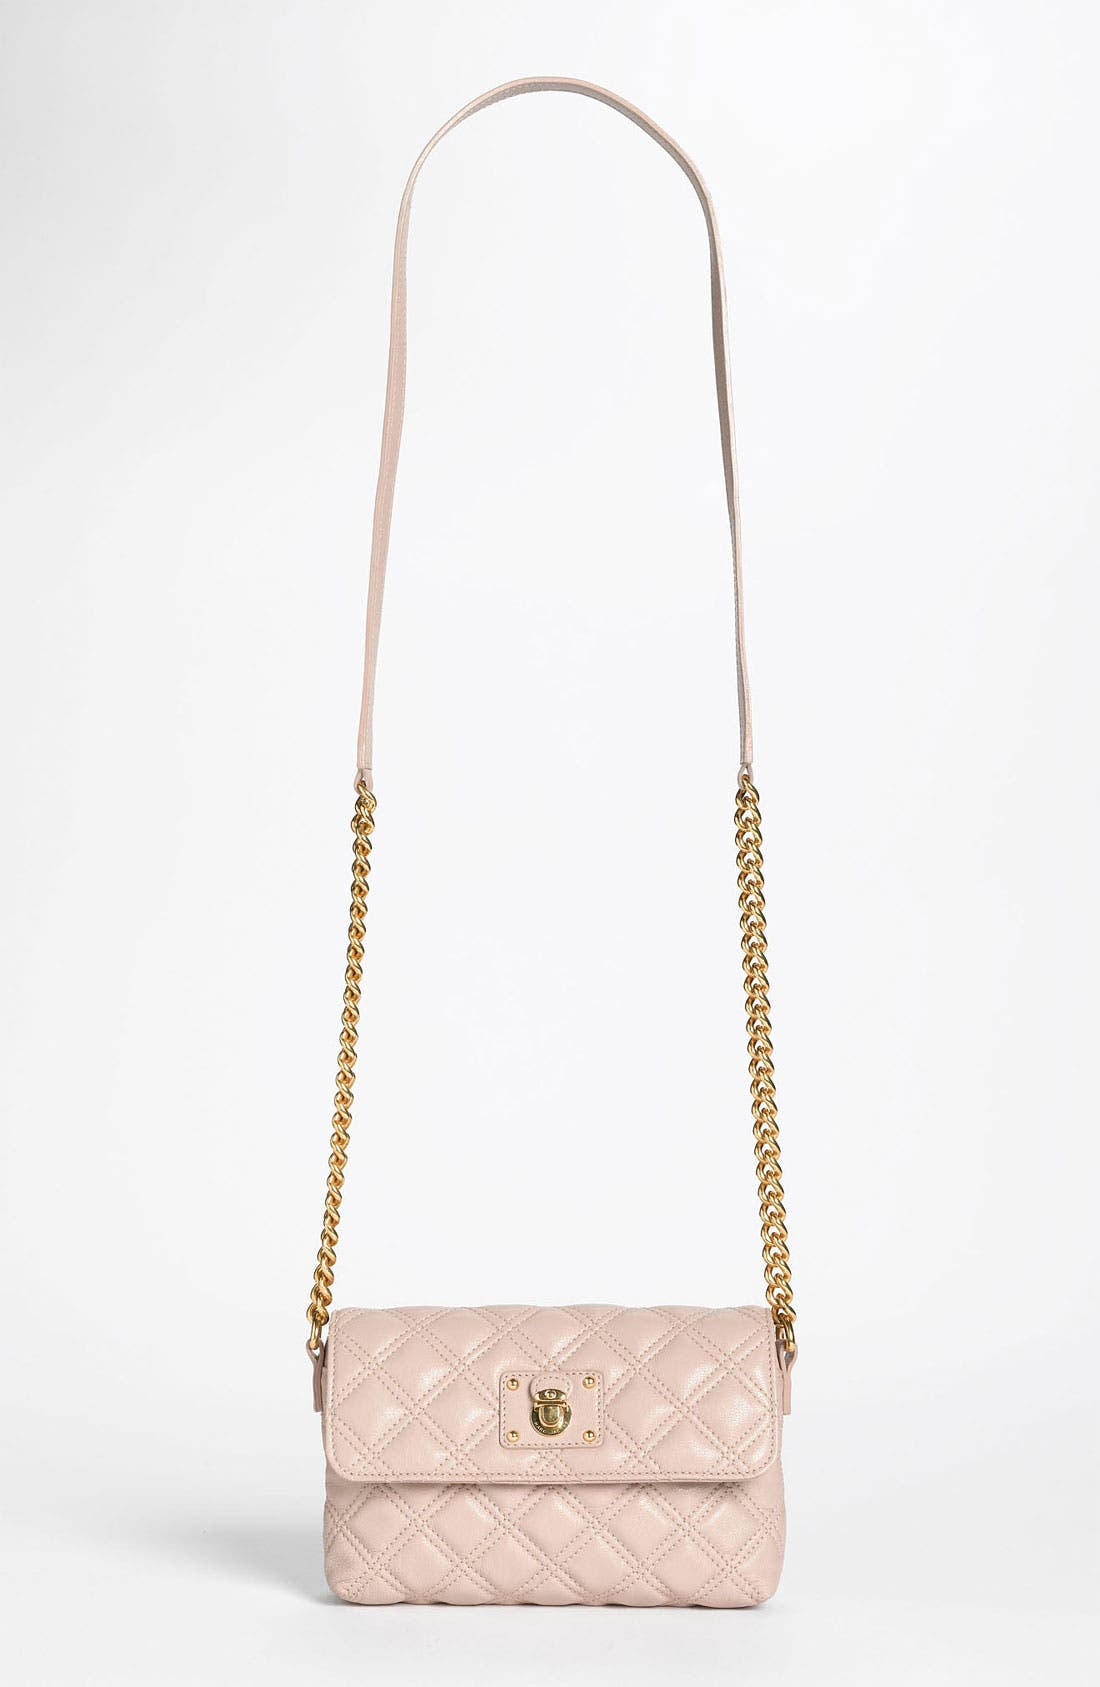 Main Image - MARC JACOBS 'Quilting - Single' Leather Shoulder Bag